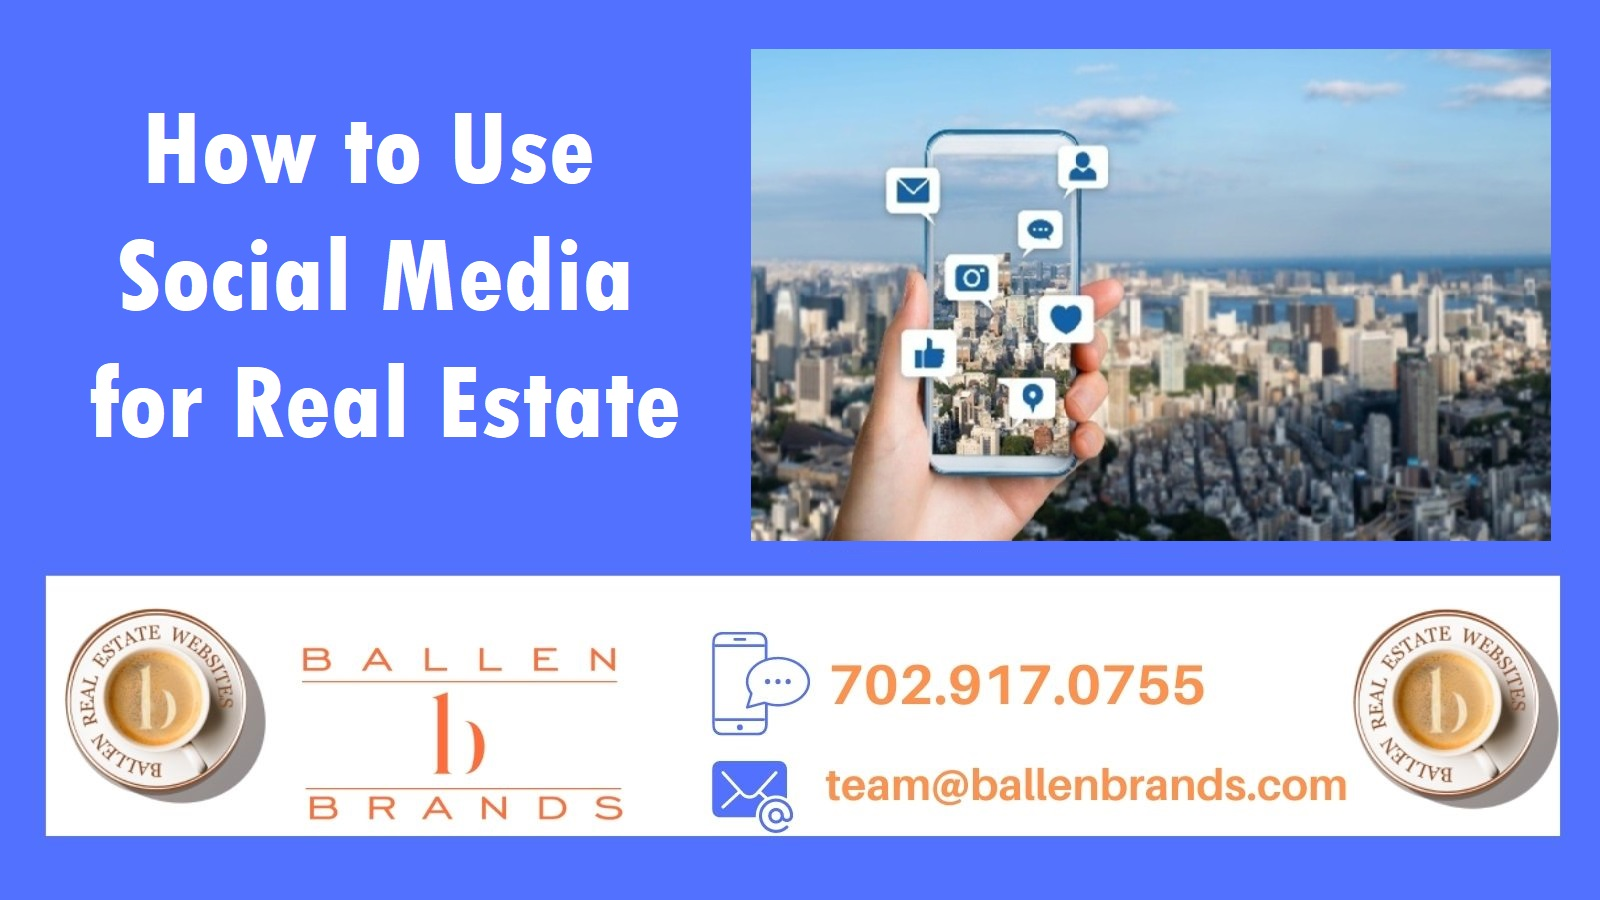 How to Use Social Media for Real Estate